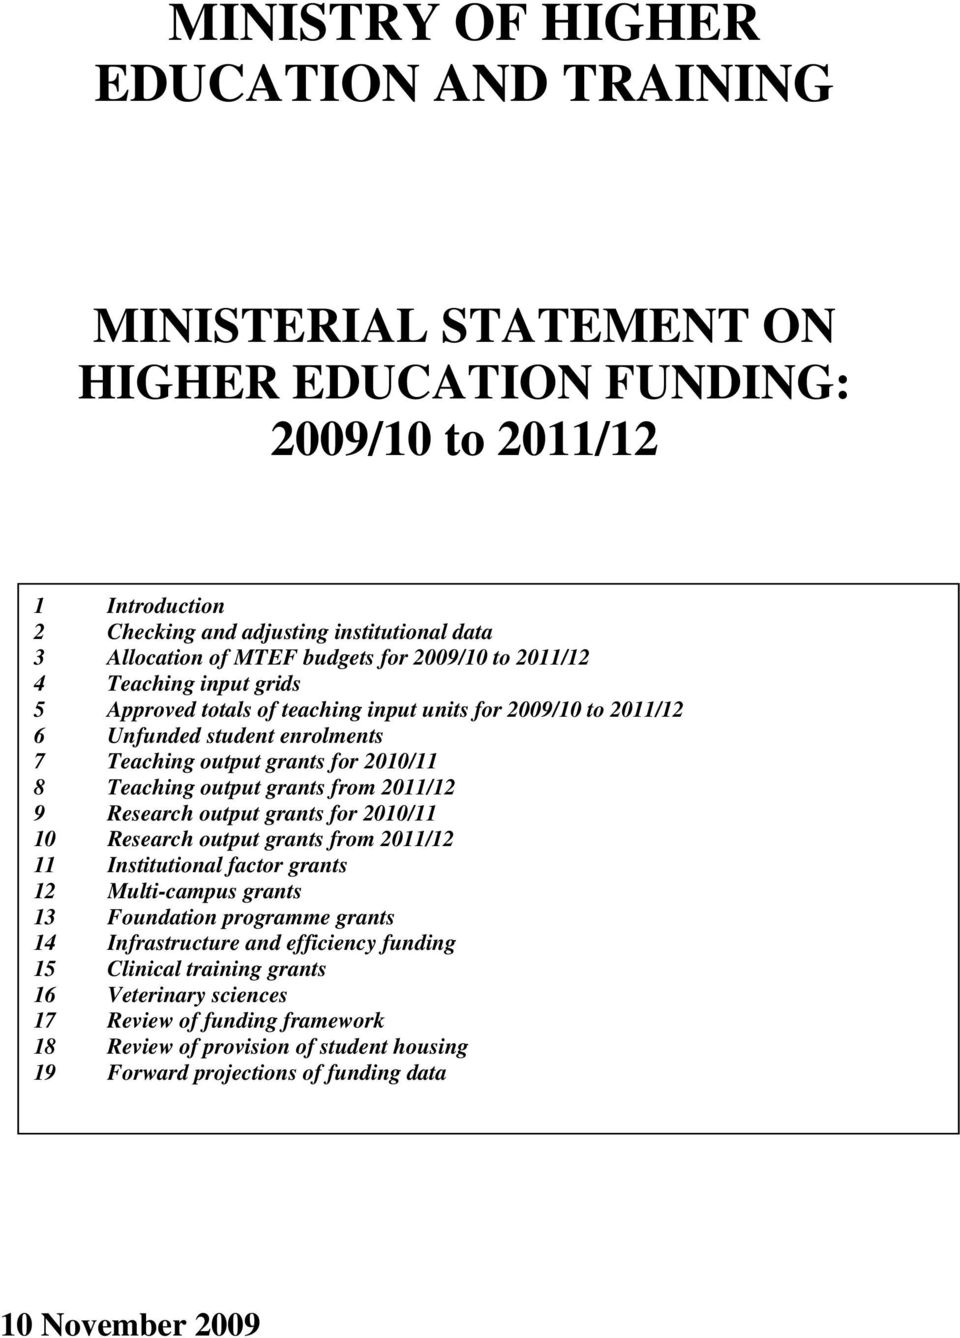 grants from 2011/12 9 Research output grants for 2010/11 10 Research output grants from 2011/12 11 Institutional factor grants 12 Multi-campus grants 13 Foundation programme grants 14 Infrastructure